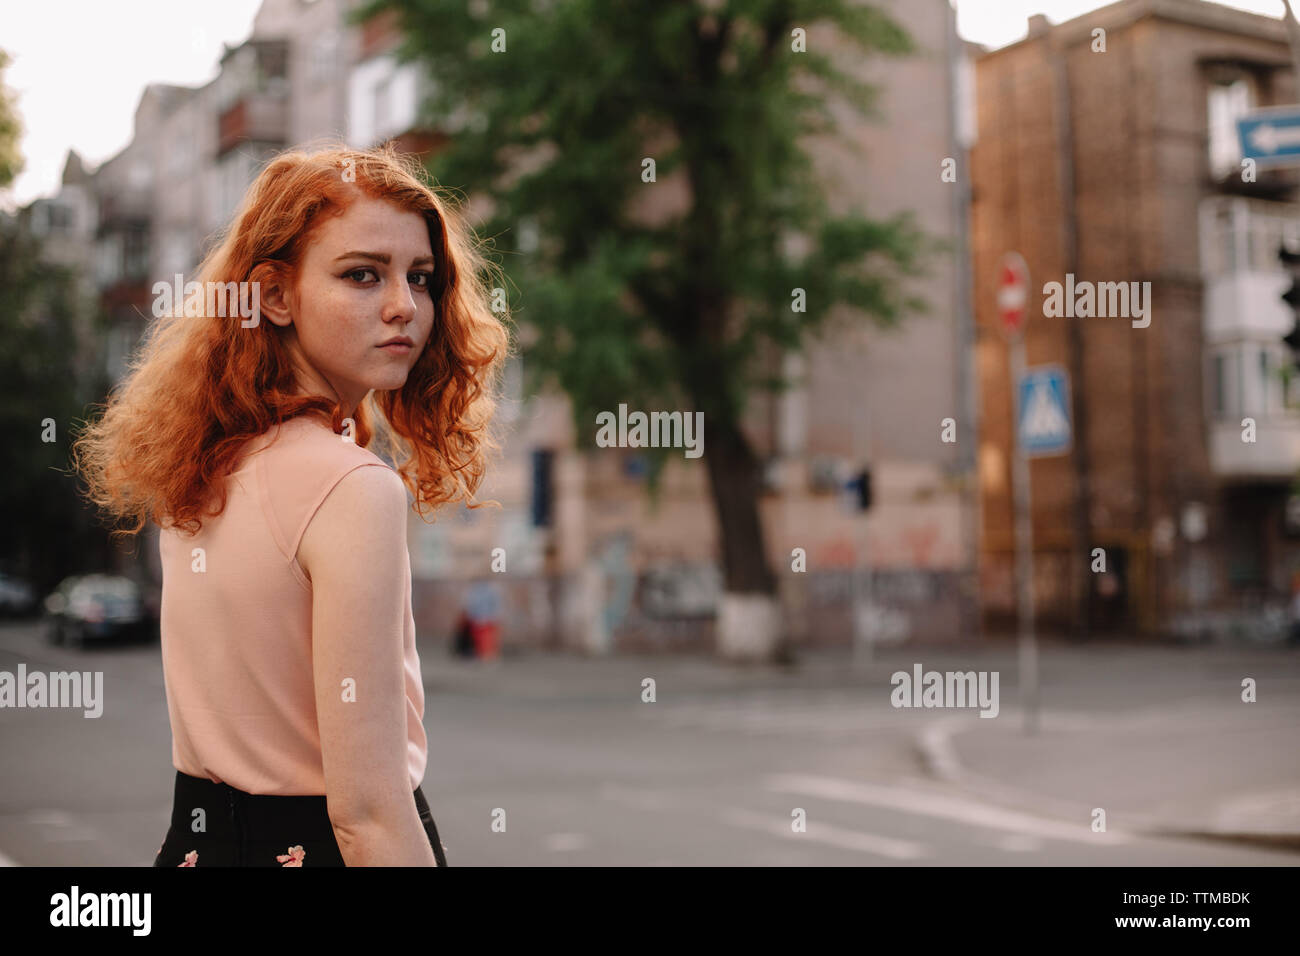 Young redheaded woman walking in city street Stock Photo